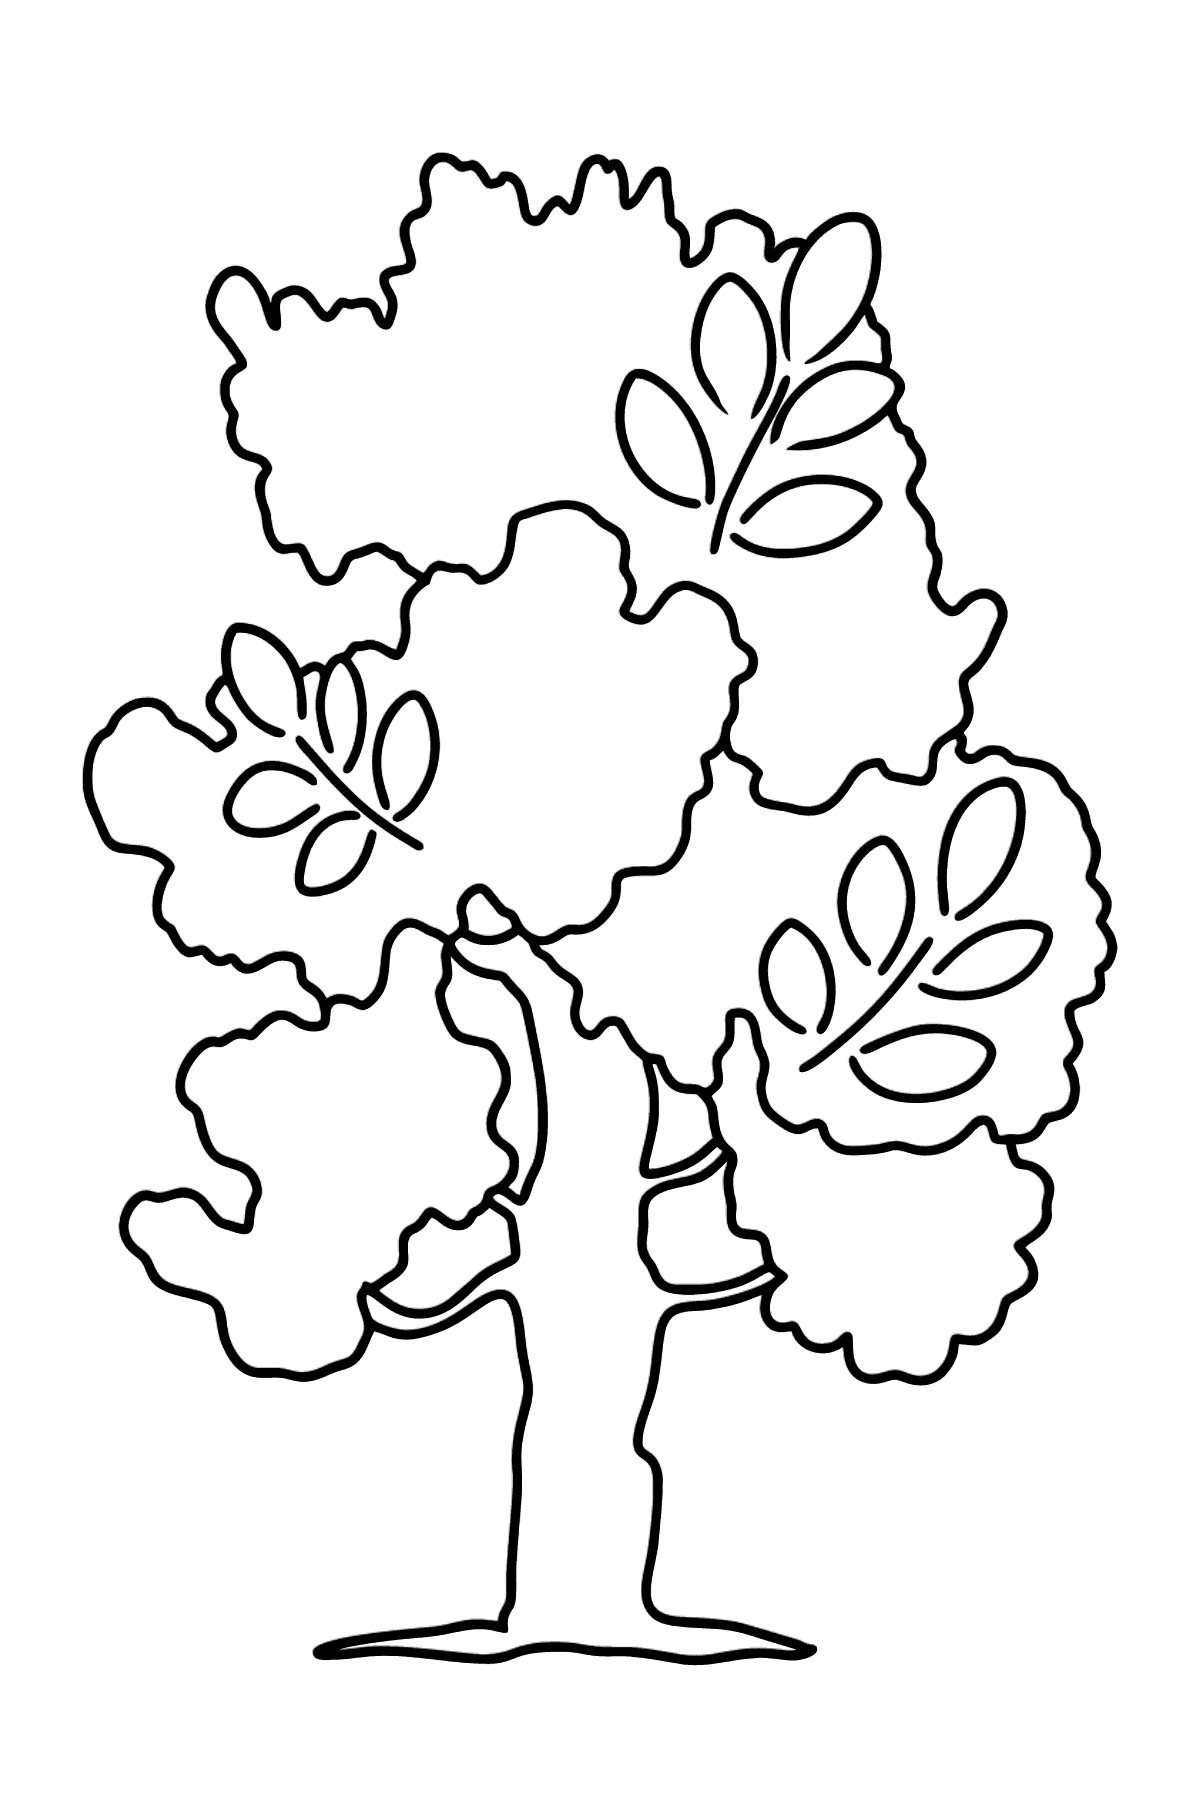 Ash Tree coloring page - Coloring Pages for Kids